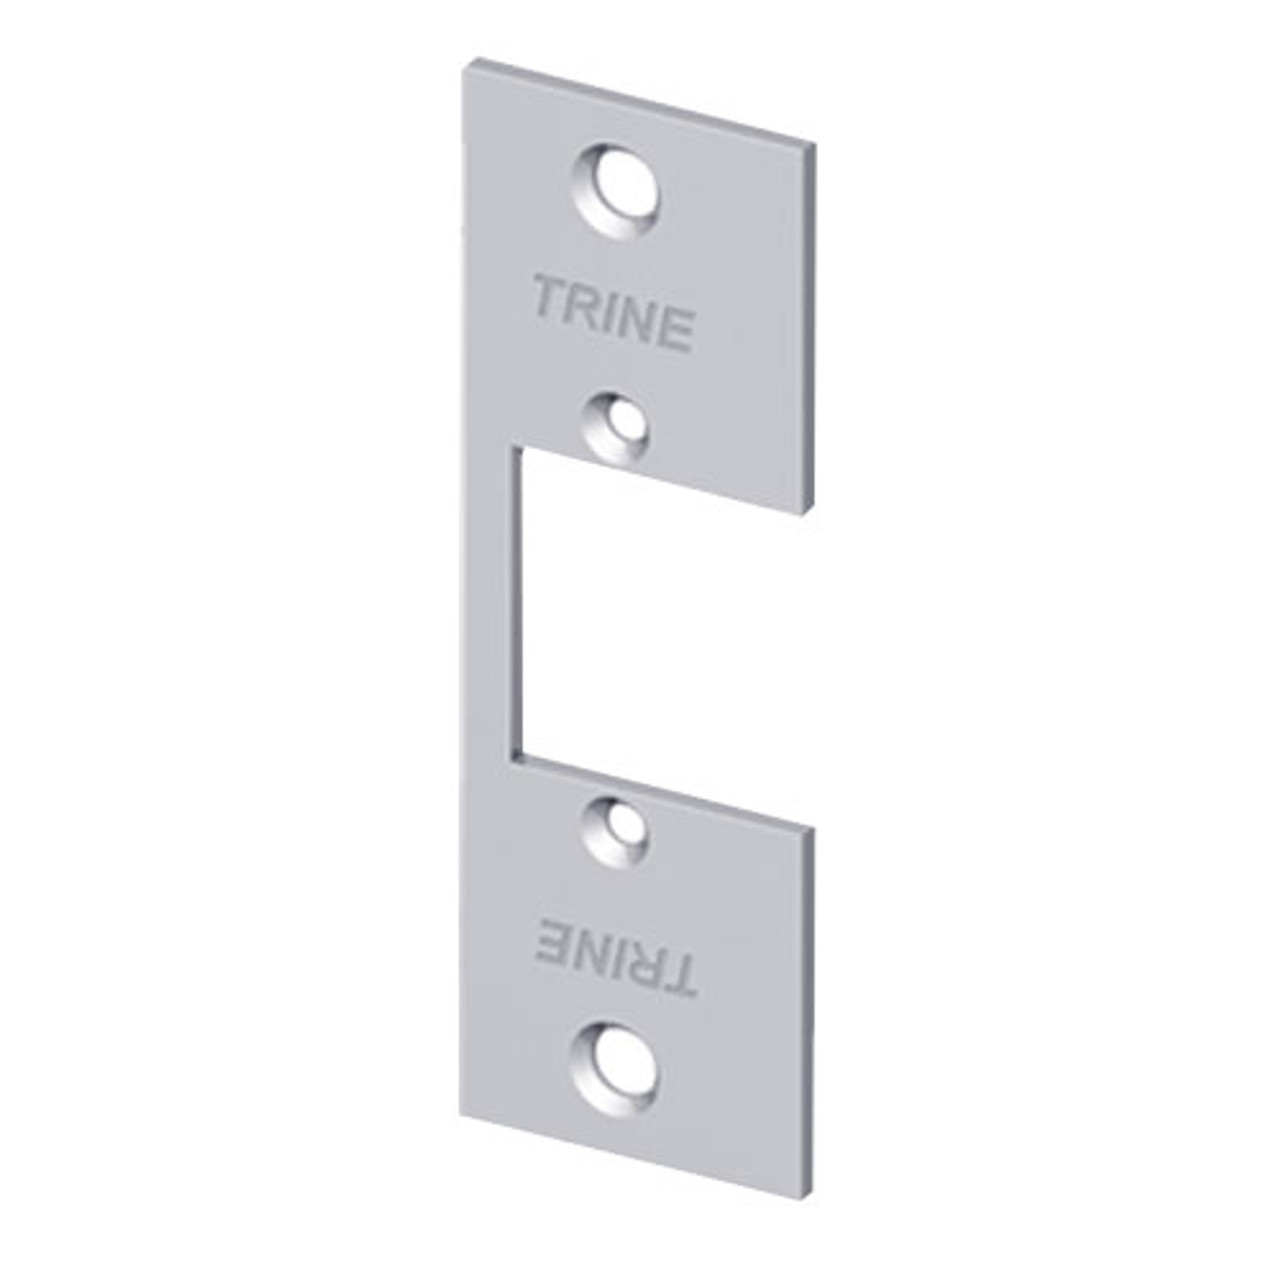 334-US26D Trine 3000 Series Faceplate in Satin Chrome Finish